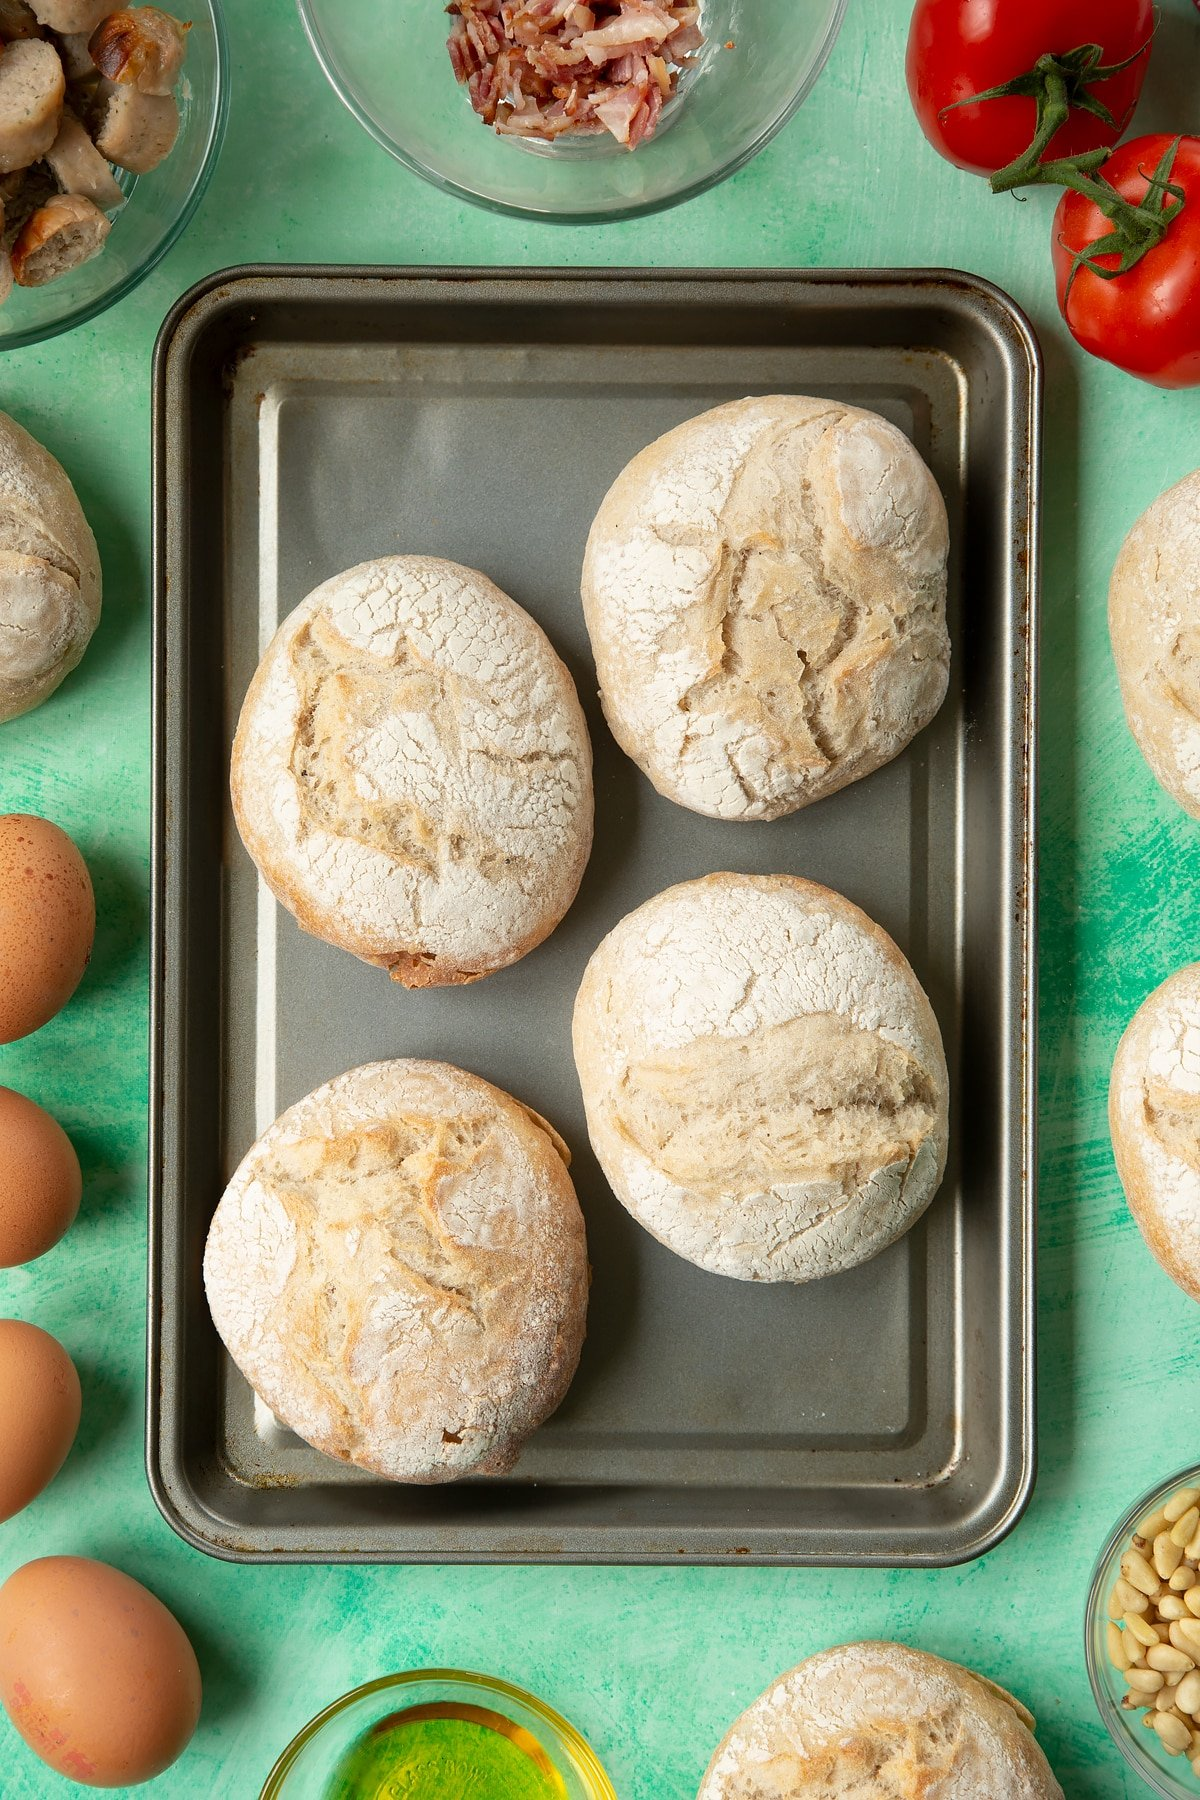 Four crusty bread rolls on a baking tray. The tray is surrounded by ingredients to make breakfast rolls.